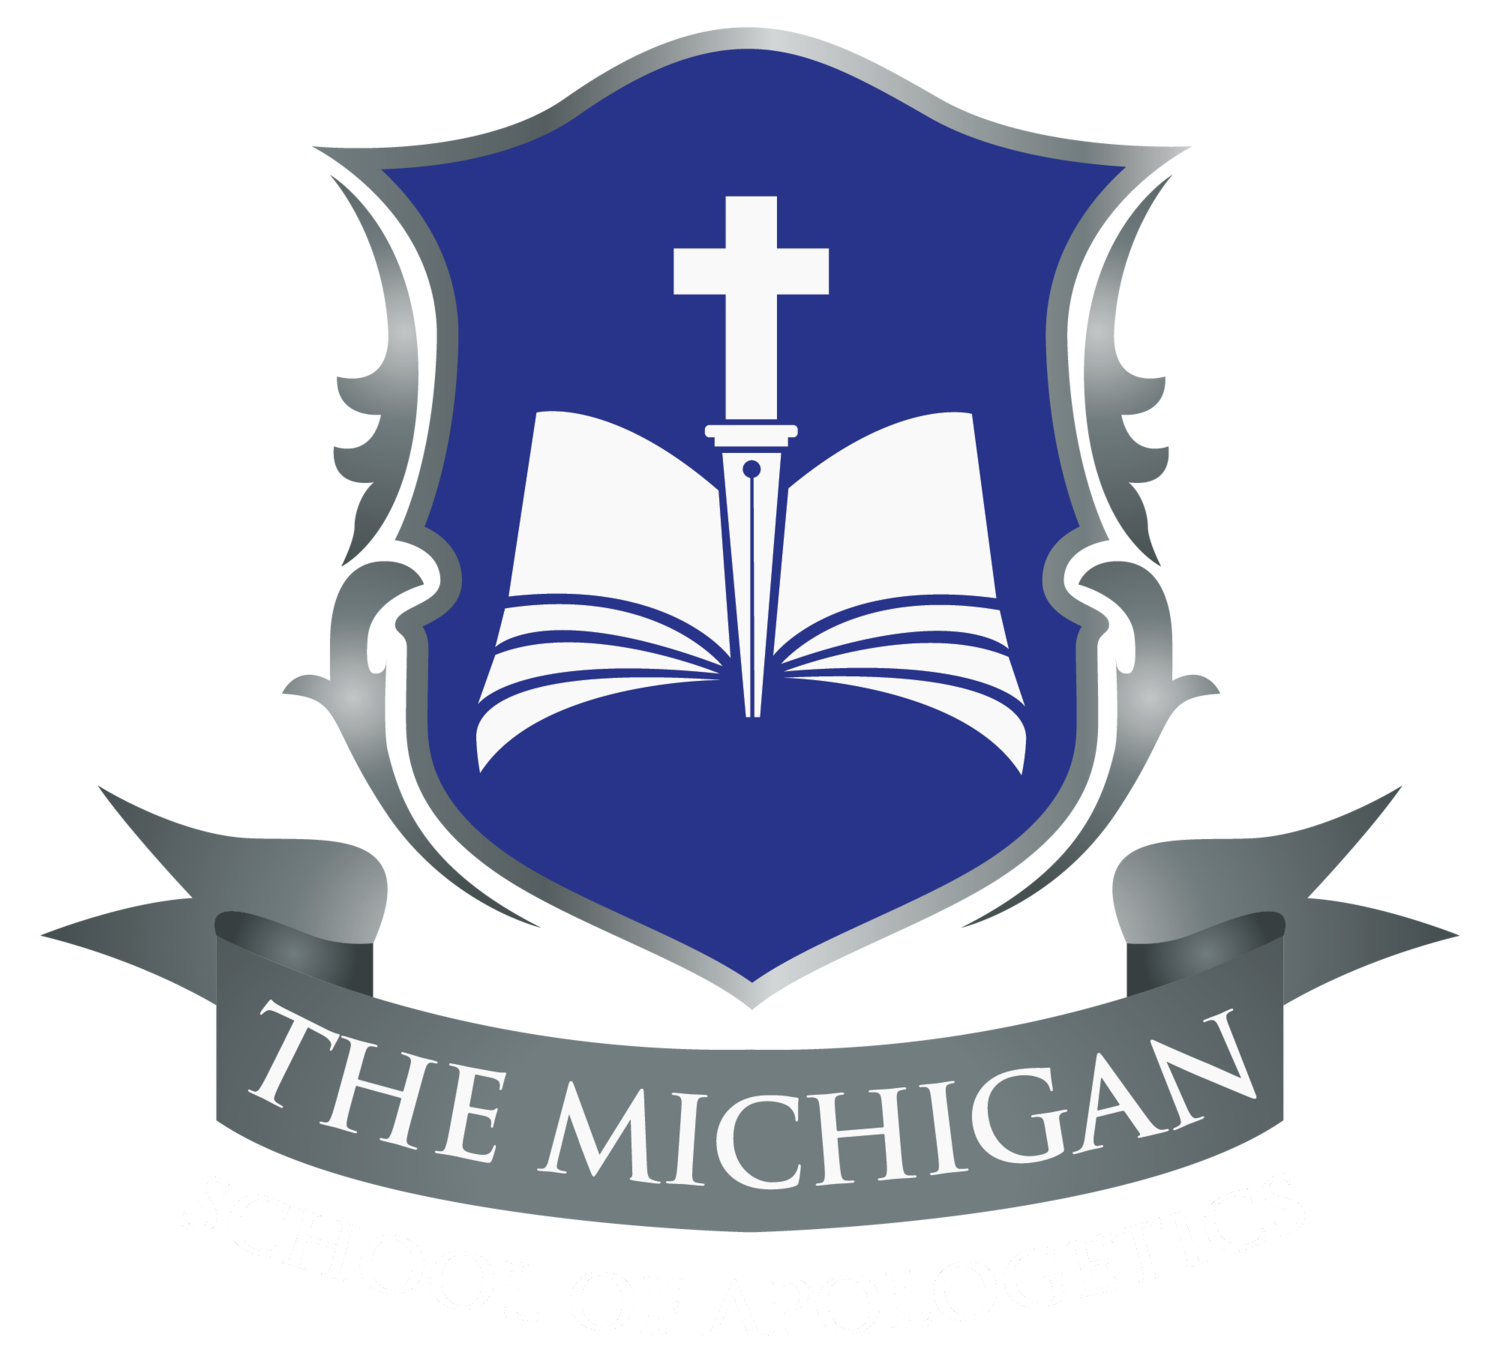 The Michigan School of Apologetics